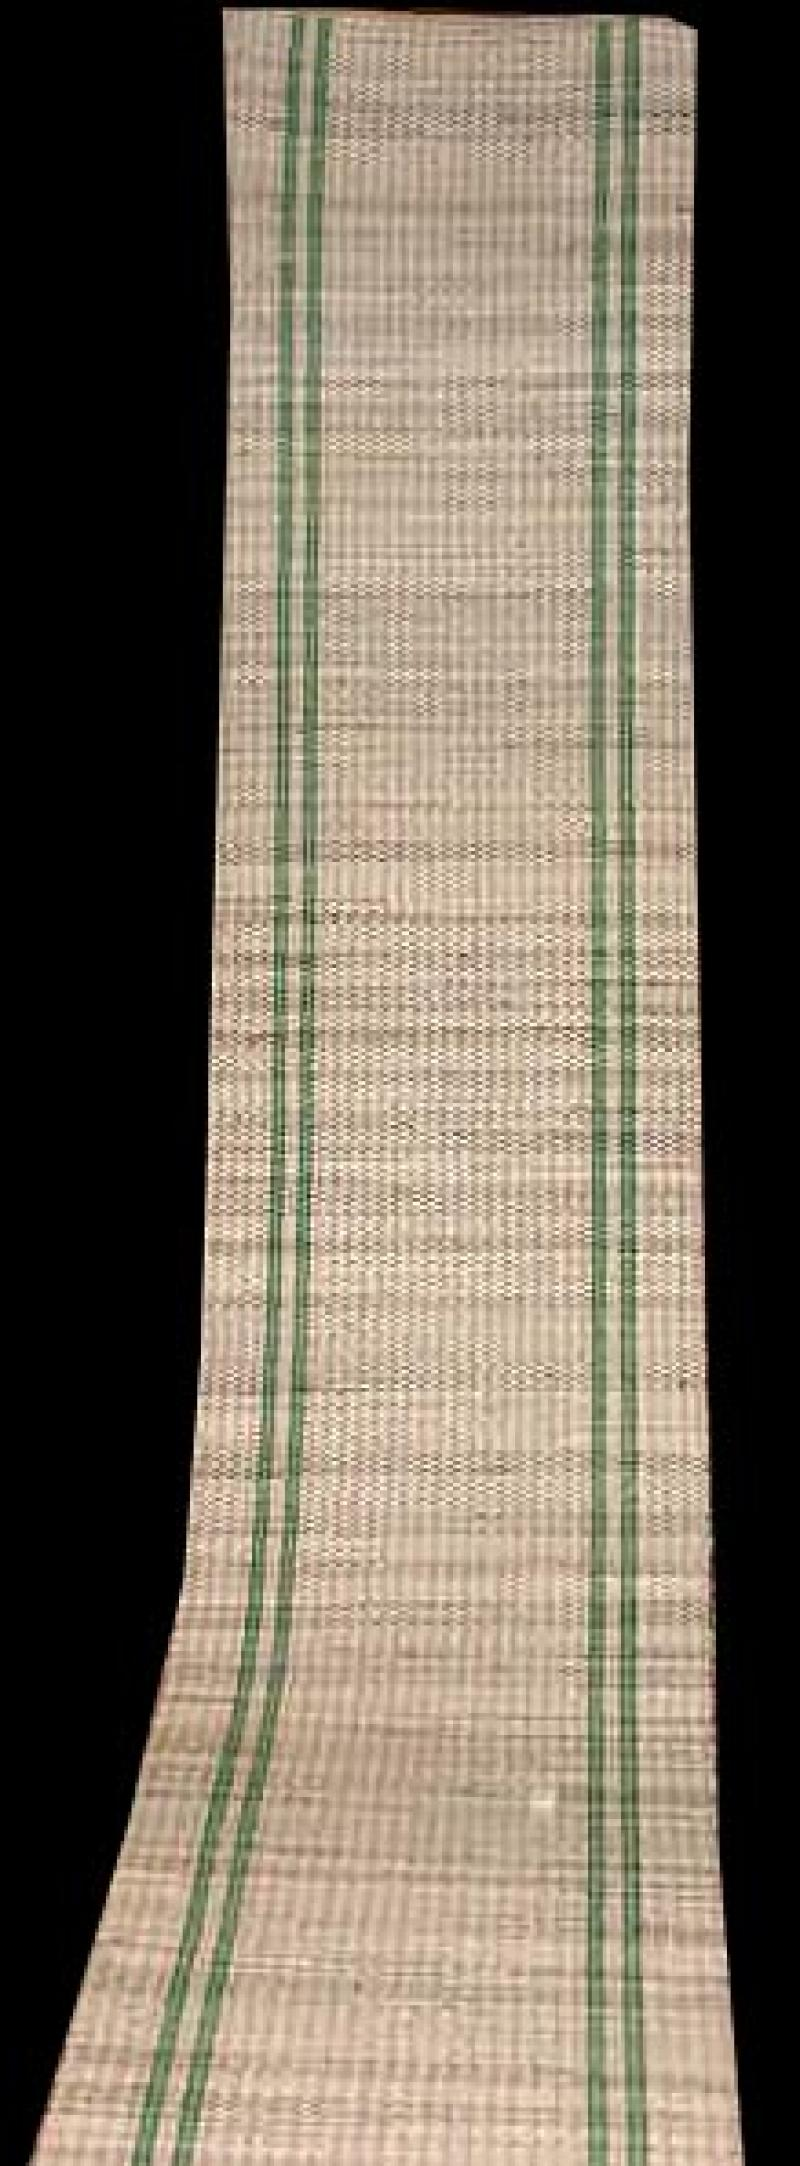 AMISH ANTIQUE RAG CARPET, GREEN STRIPES